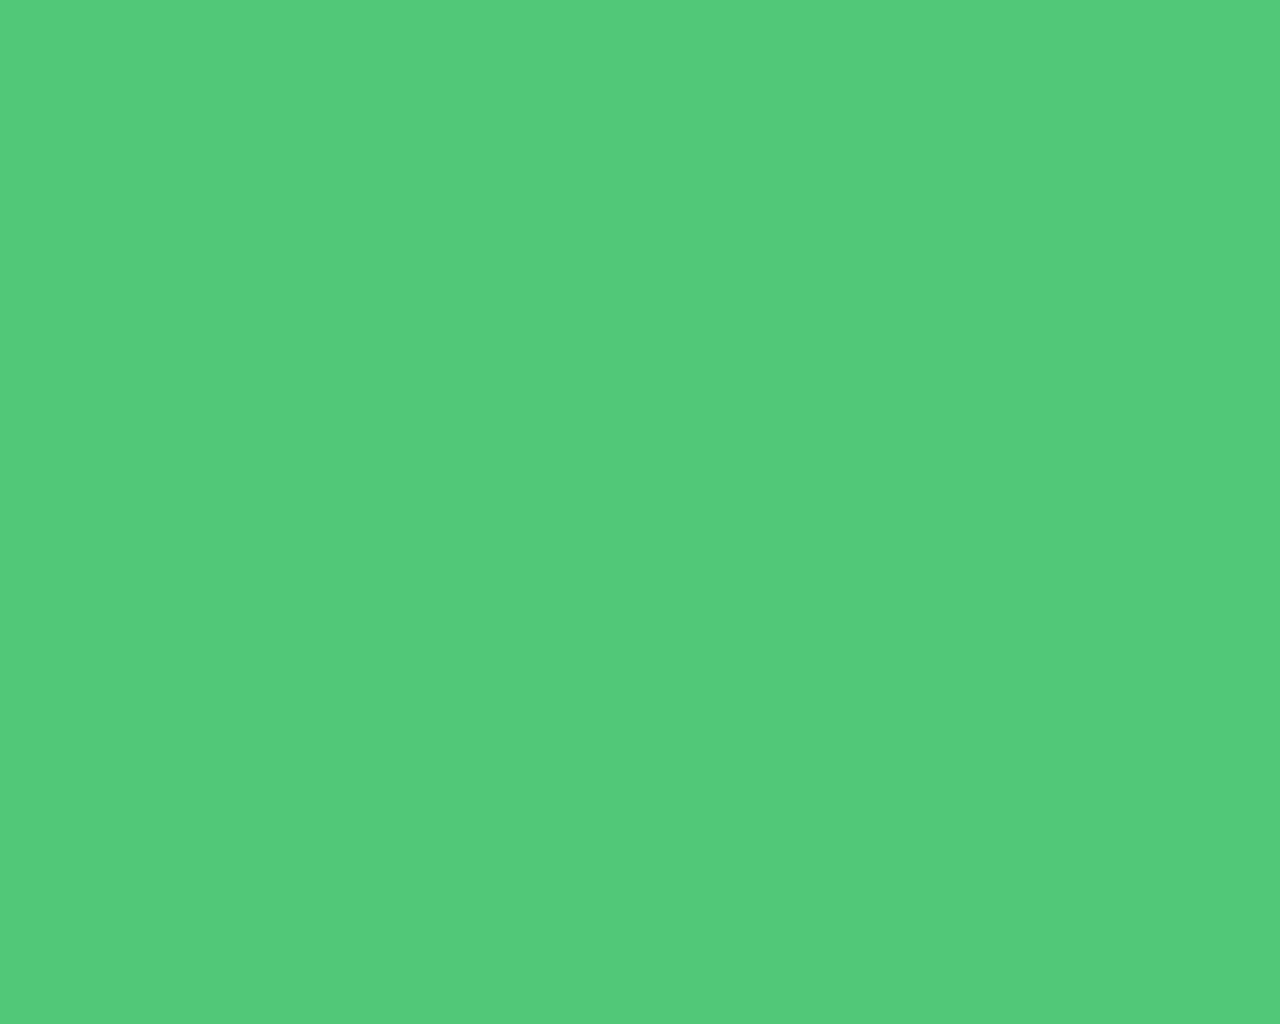 1280x1024 Emerald Solid Color Background